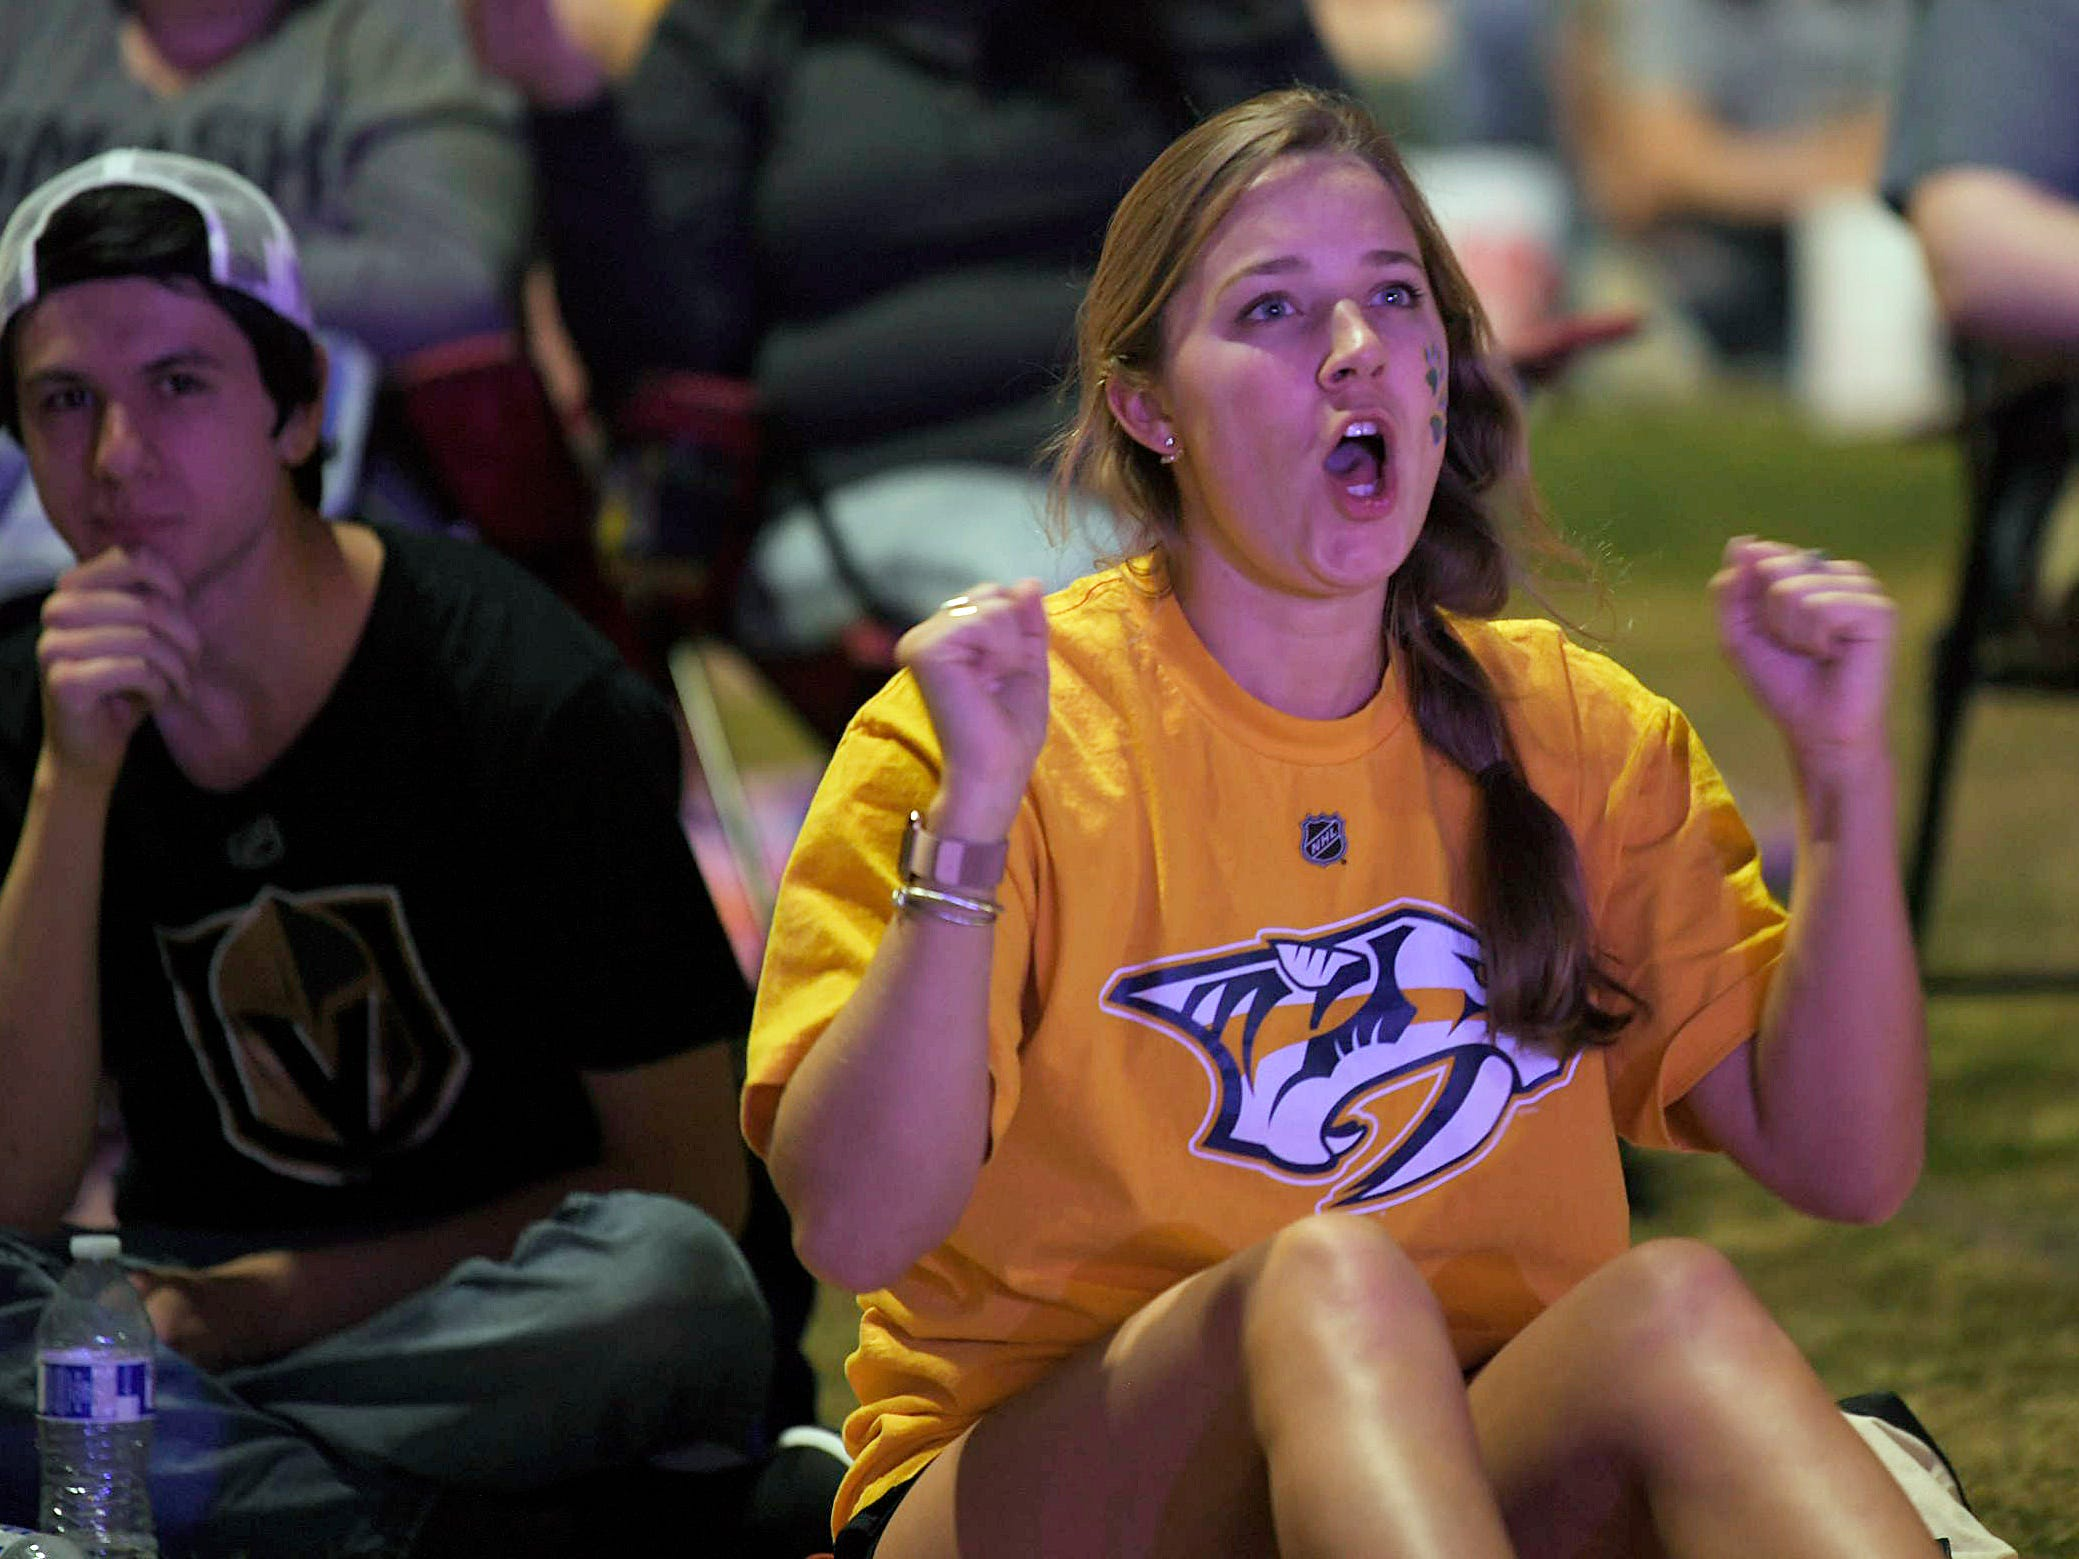 Predators fan Julia Fleming watches the game at Preds Party in the Park at Walk of Fame Park in Nashville on Wednesday, April 10, 2019.